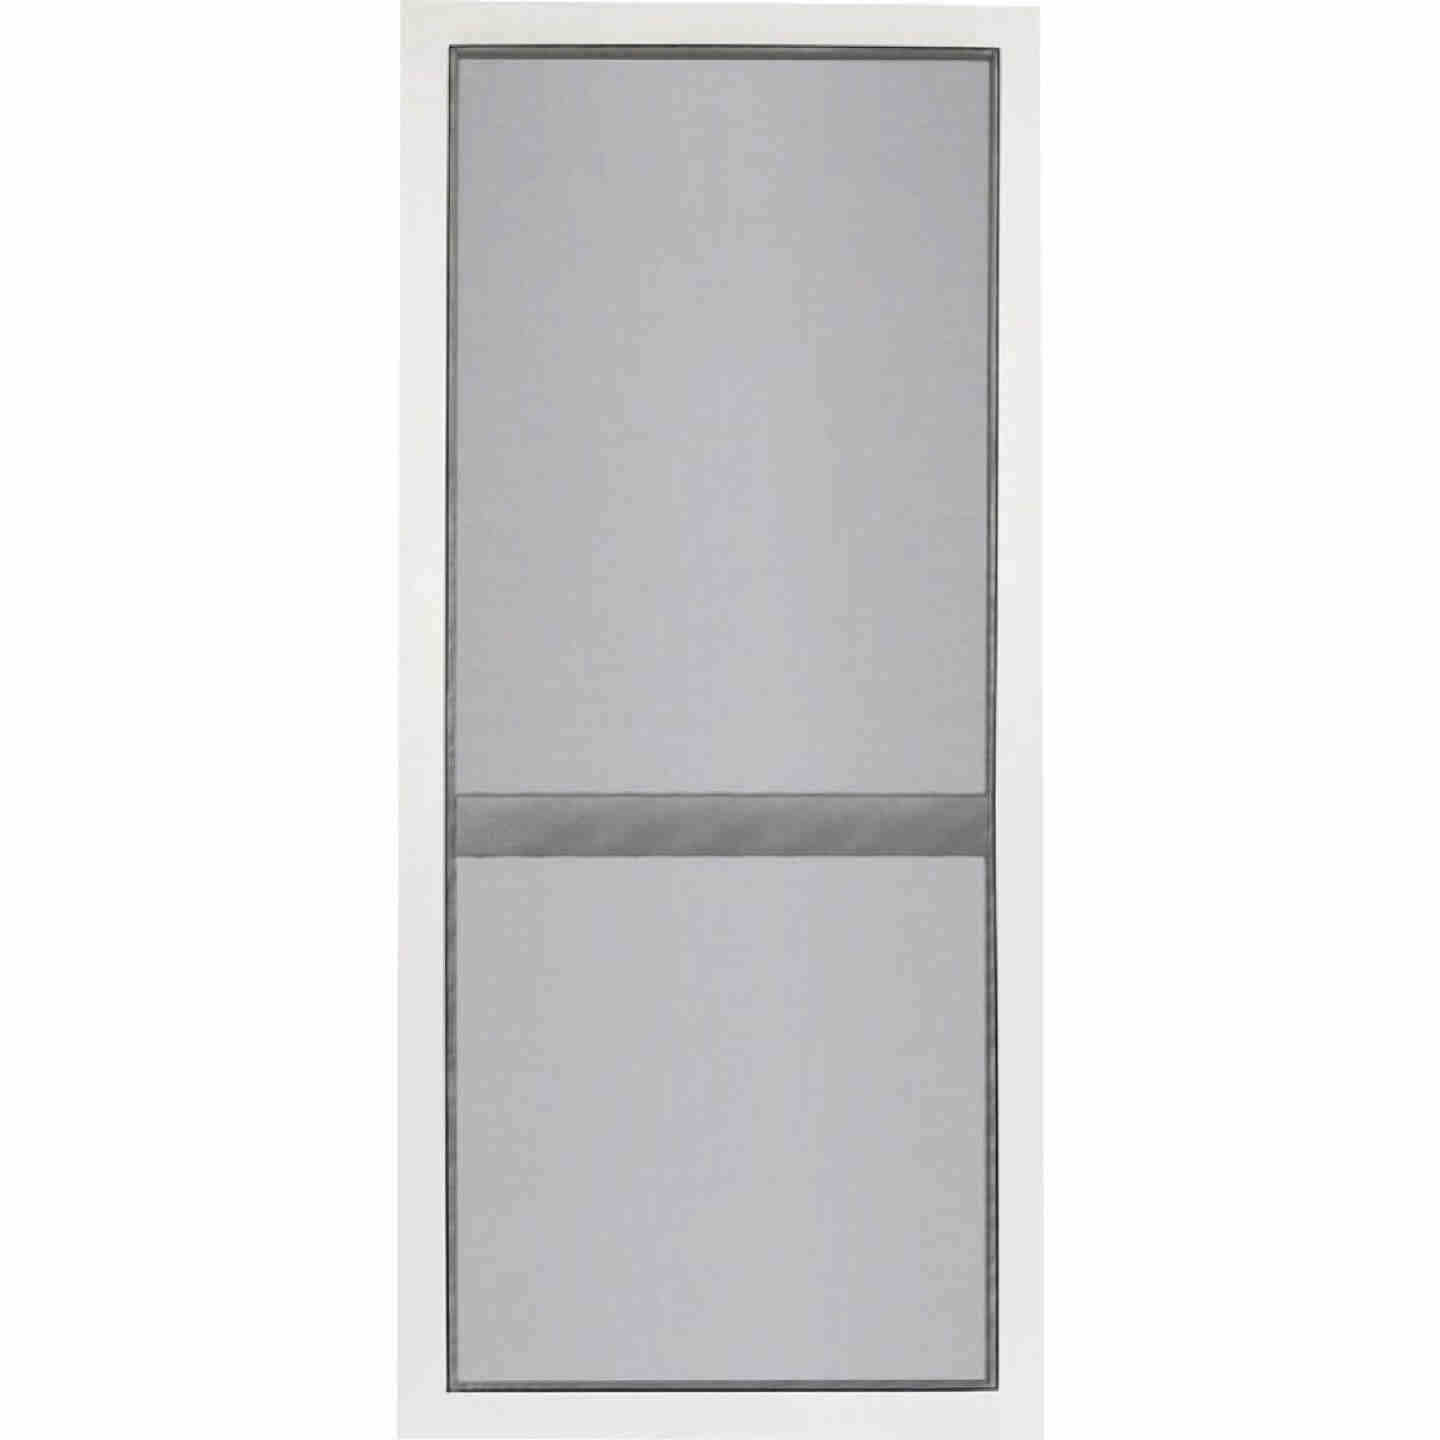 Screen Tight Vinylcraft 36 In. W x 80 In. H x 1 In. Thick White Vinyl Screen Door Image 2